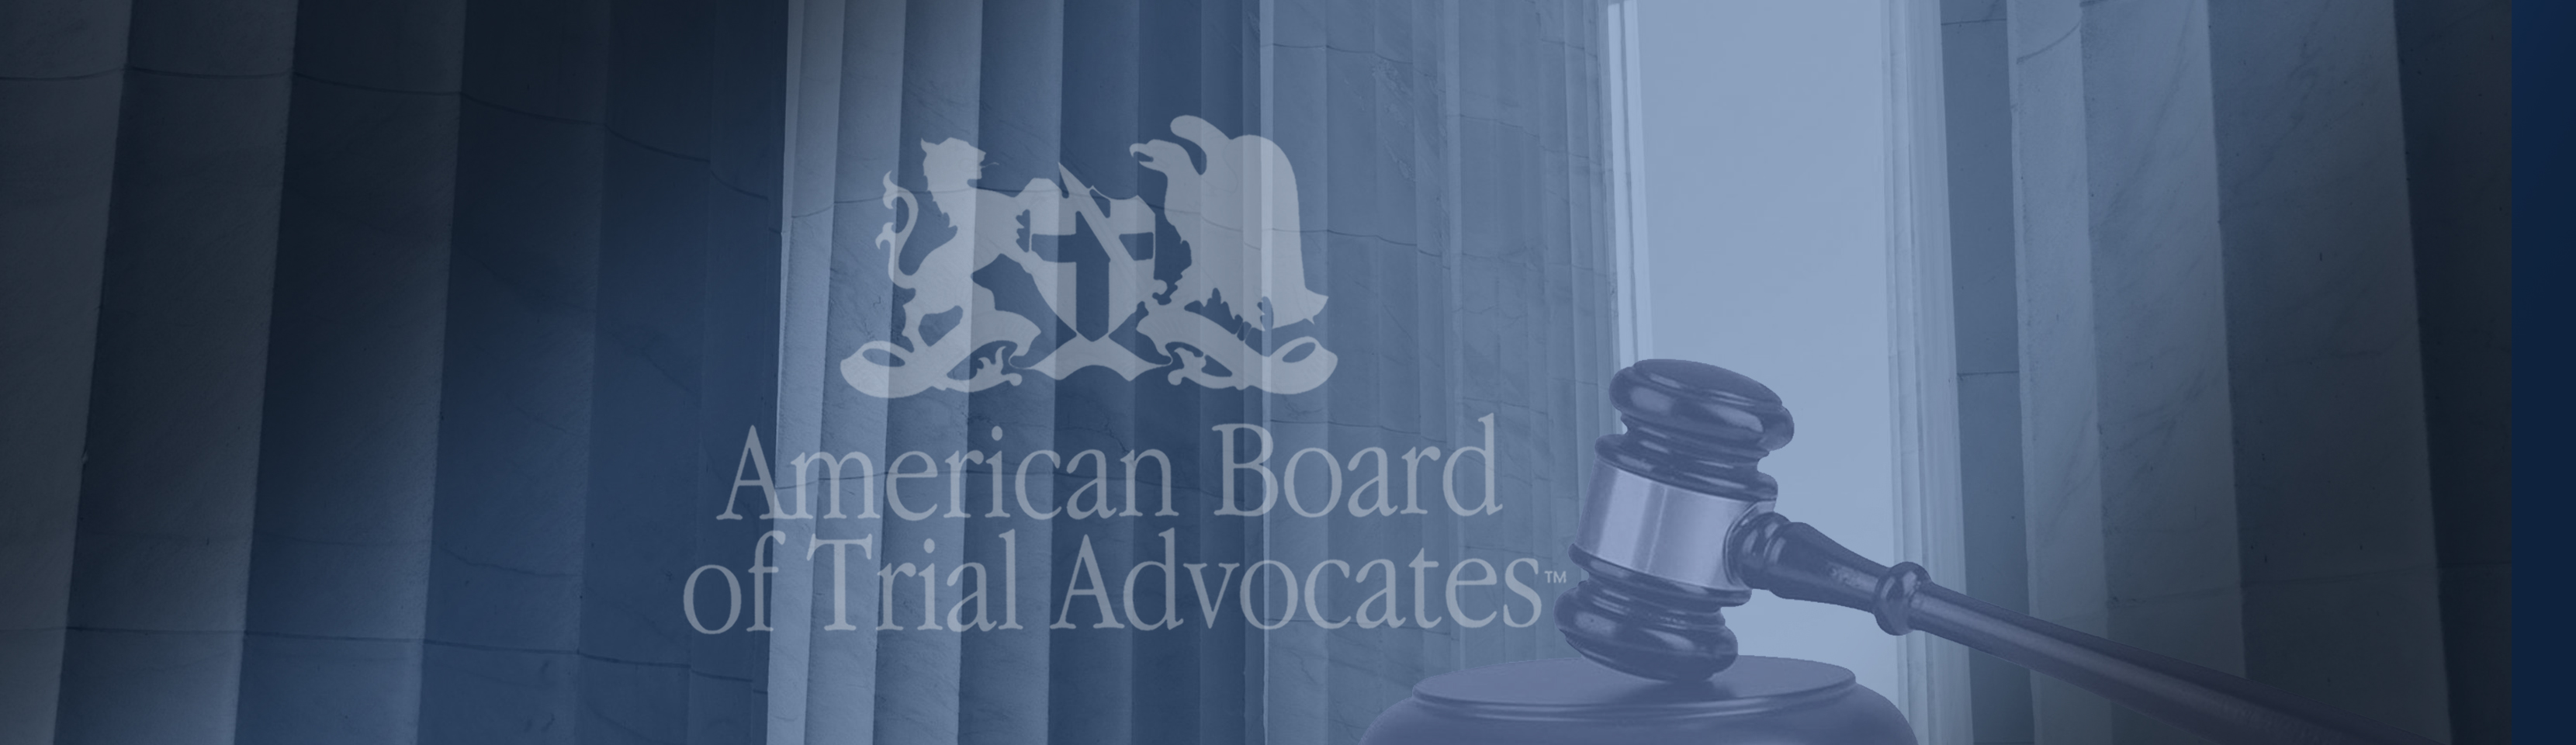 Janet Forero a member of American Board of Trial Advocates (ABOTA)